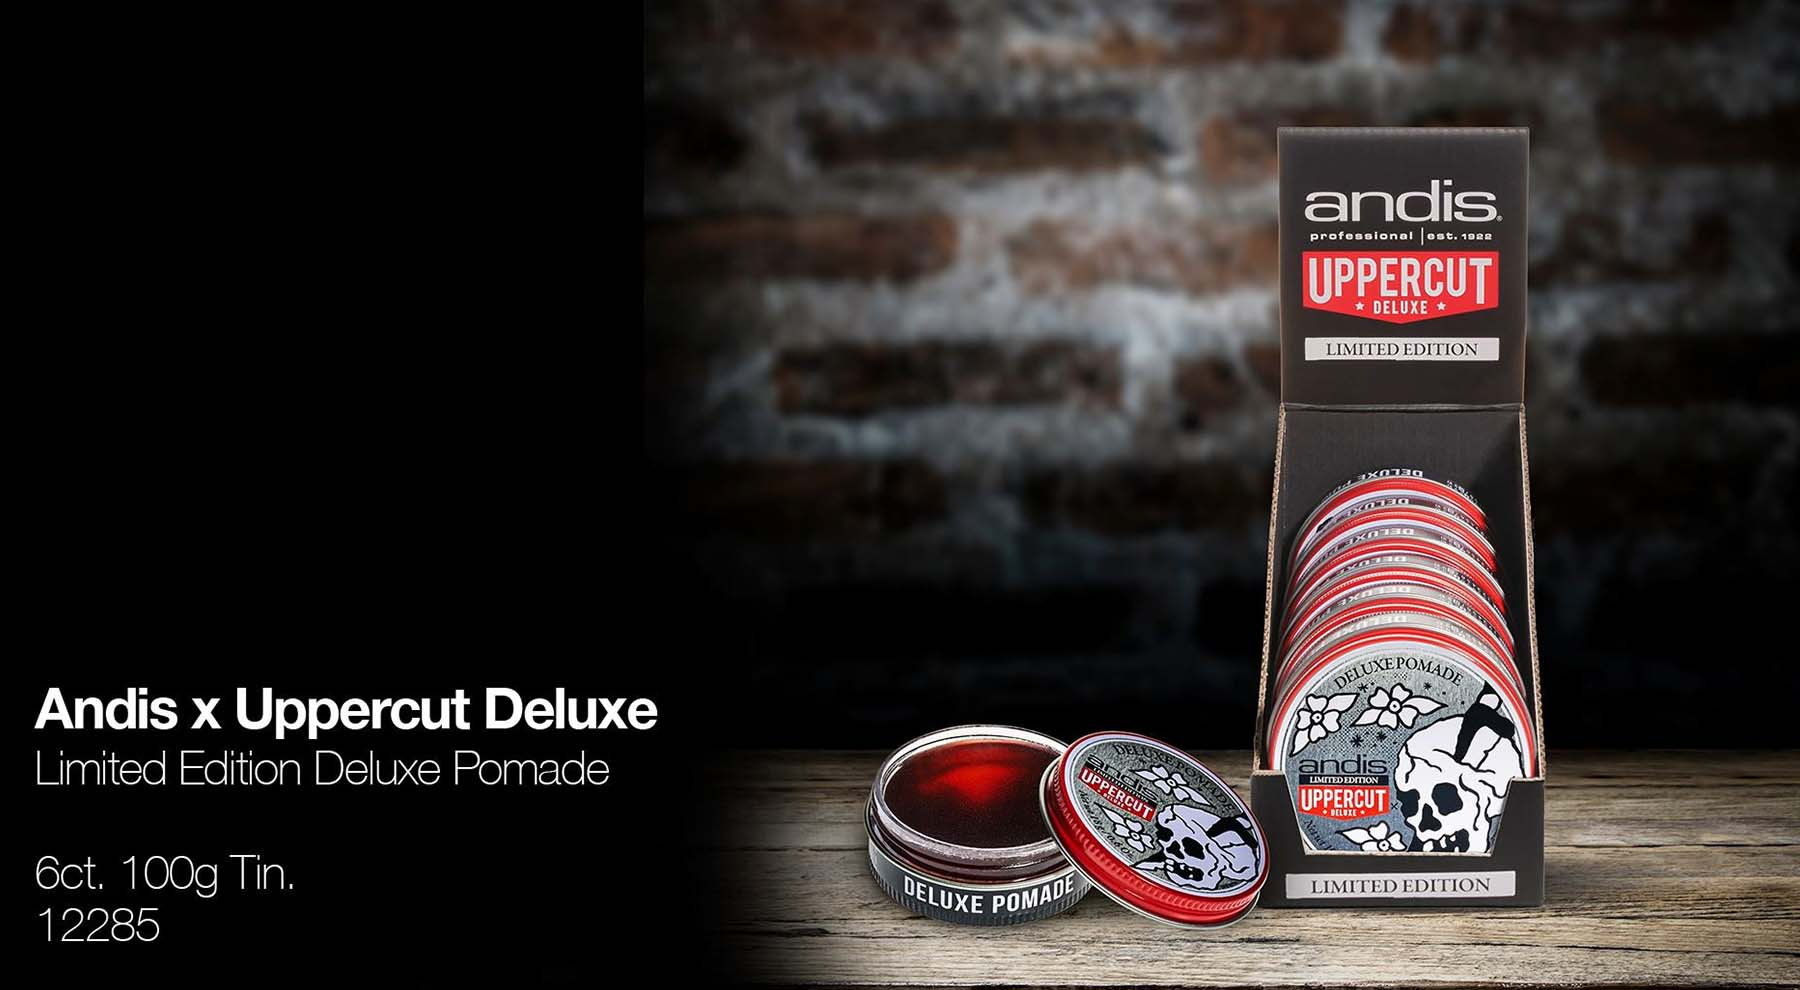 Andis x Uppercut Deluxe Pomade